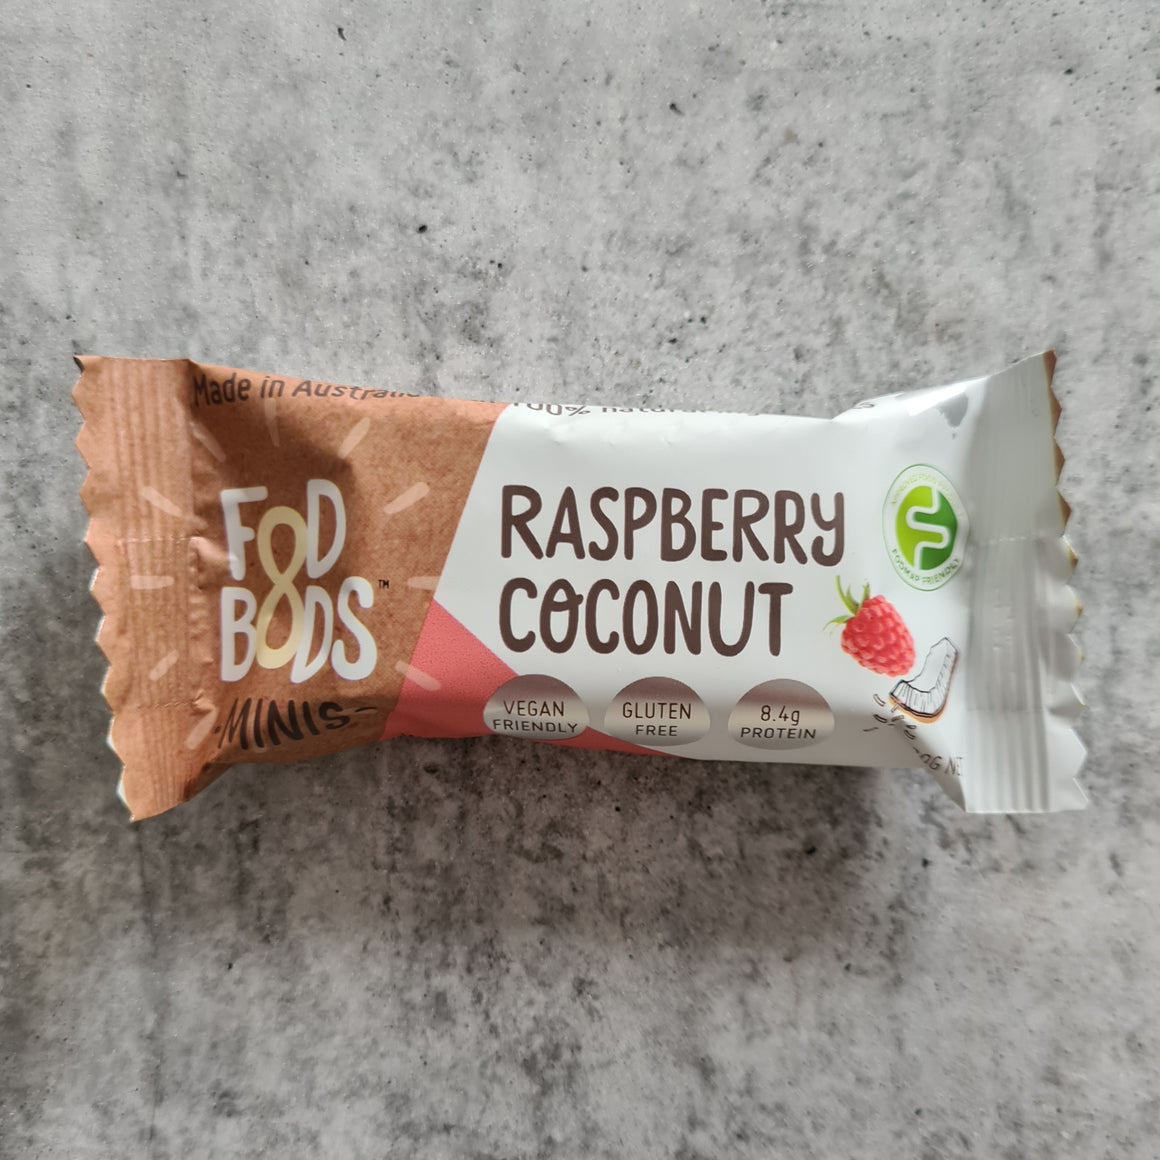 Fodbods - Raspberry Coconut Bar (30g) - Foddies Low FODMAP